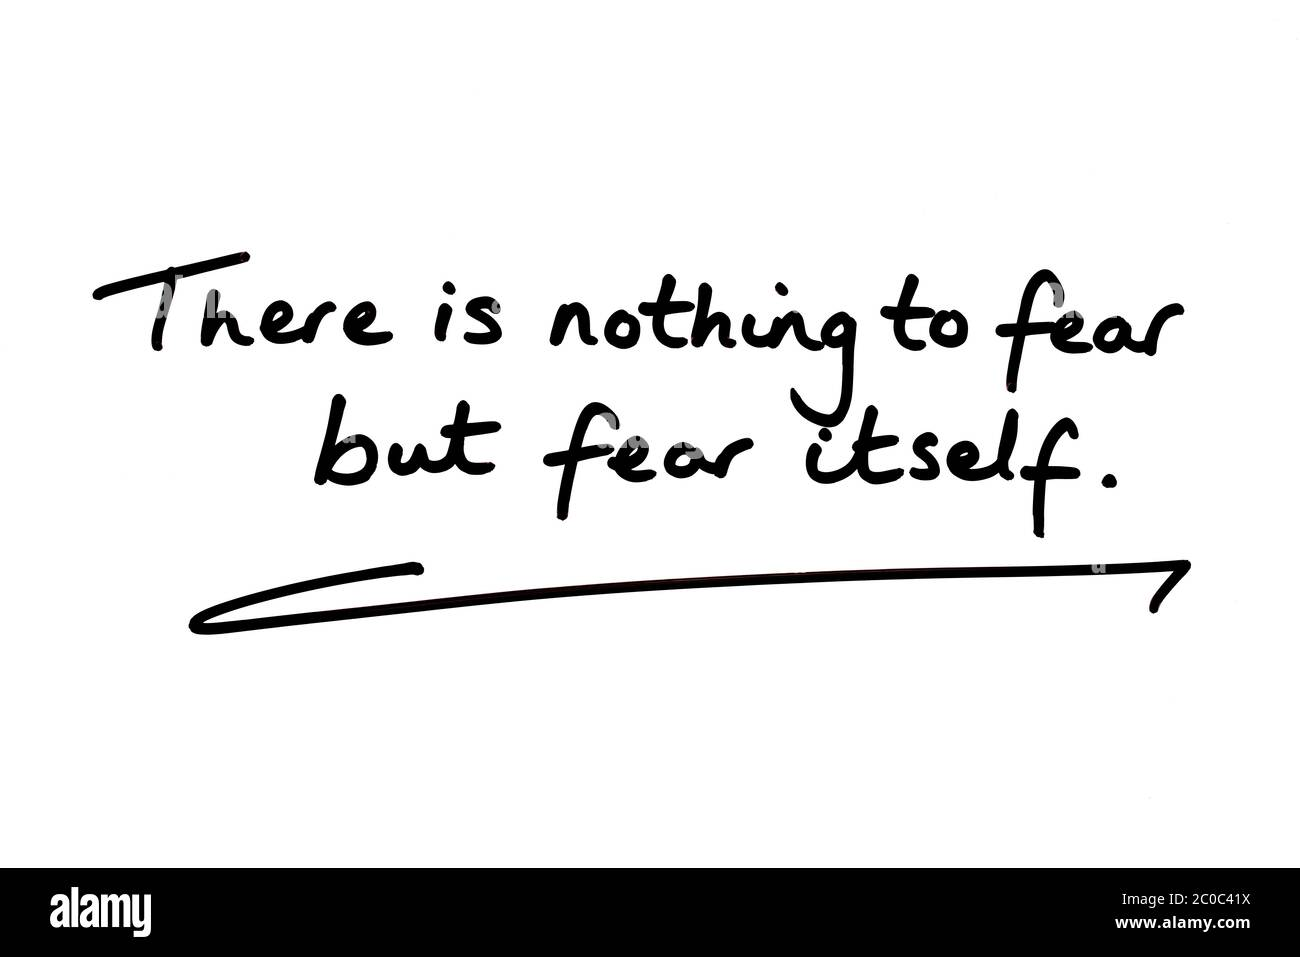 There is nothing to fear but fear itself - handwritten on a white background. Stock Photo